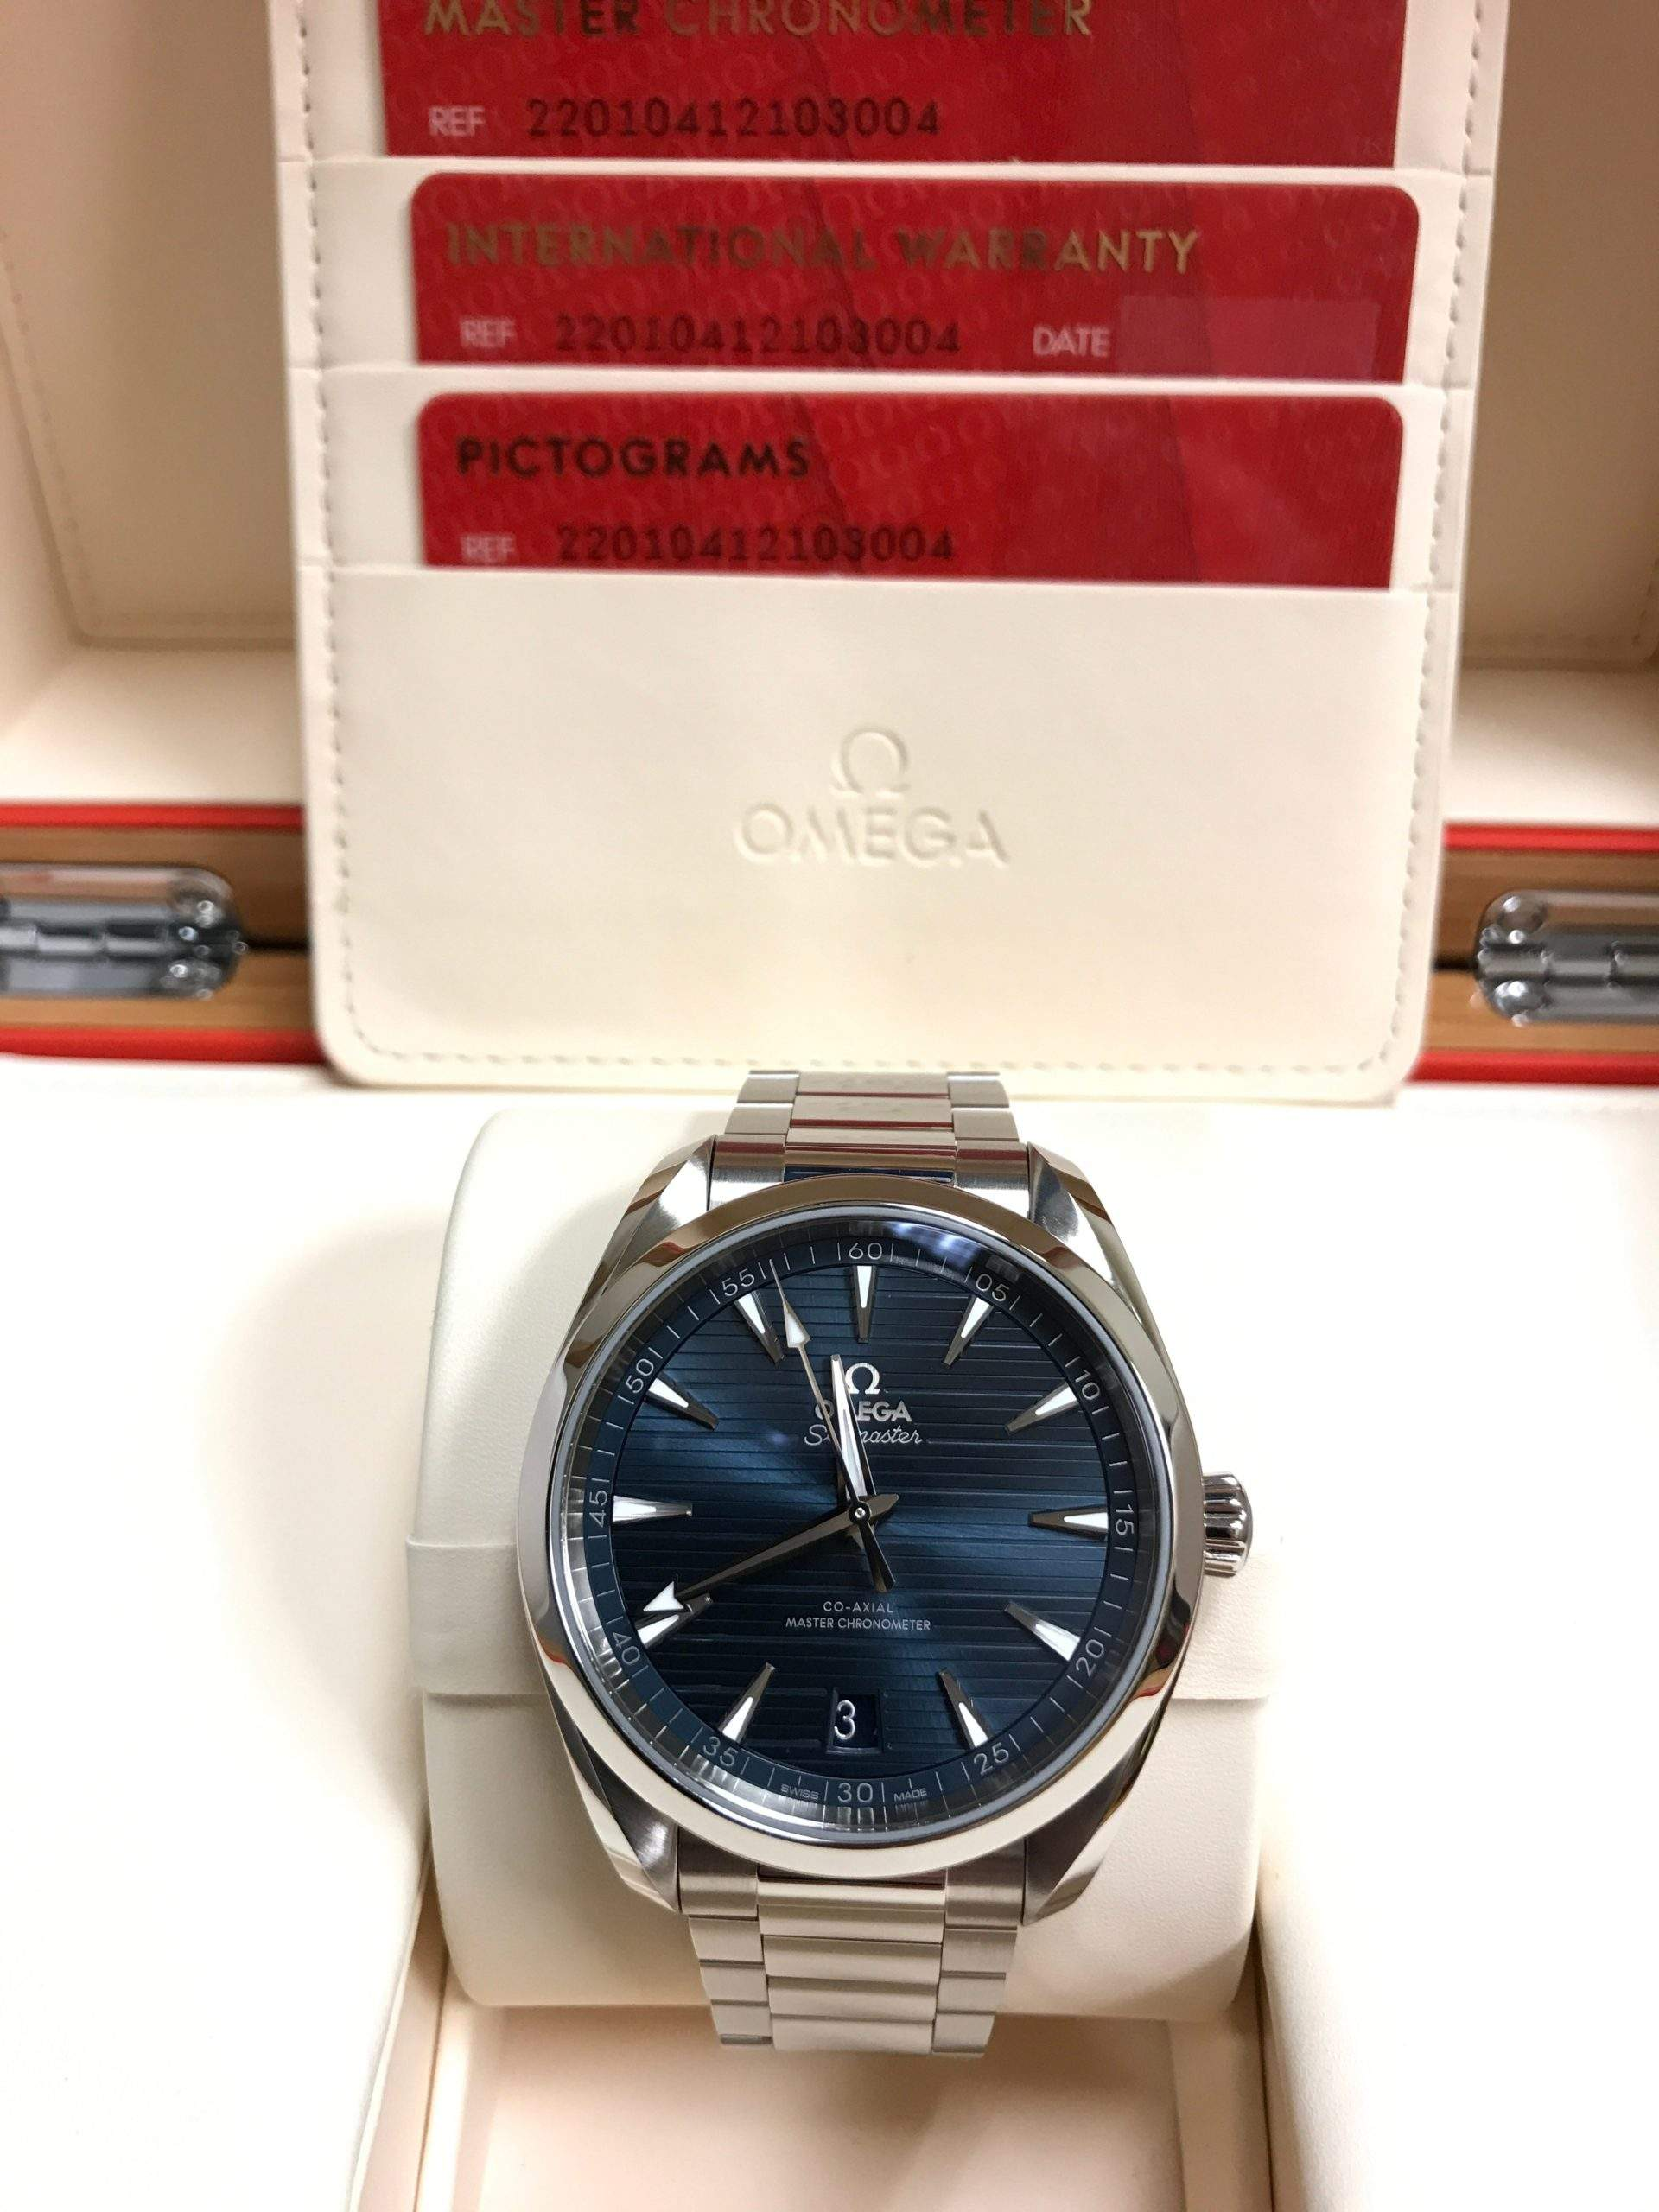 The Omega Seamaster Aqua Terra blends great design with modern technology and is the perfect watch for everyday use.